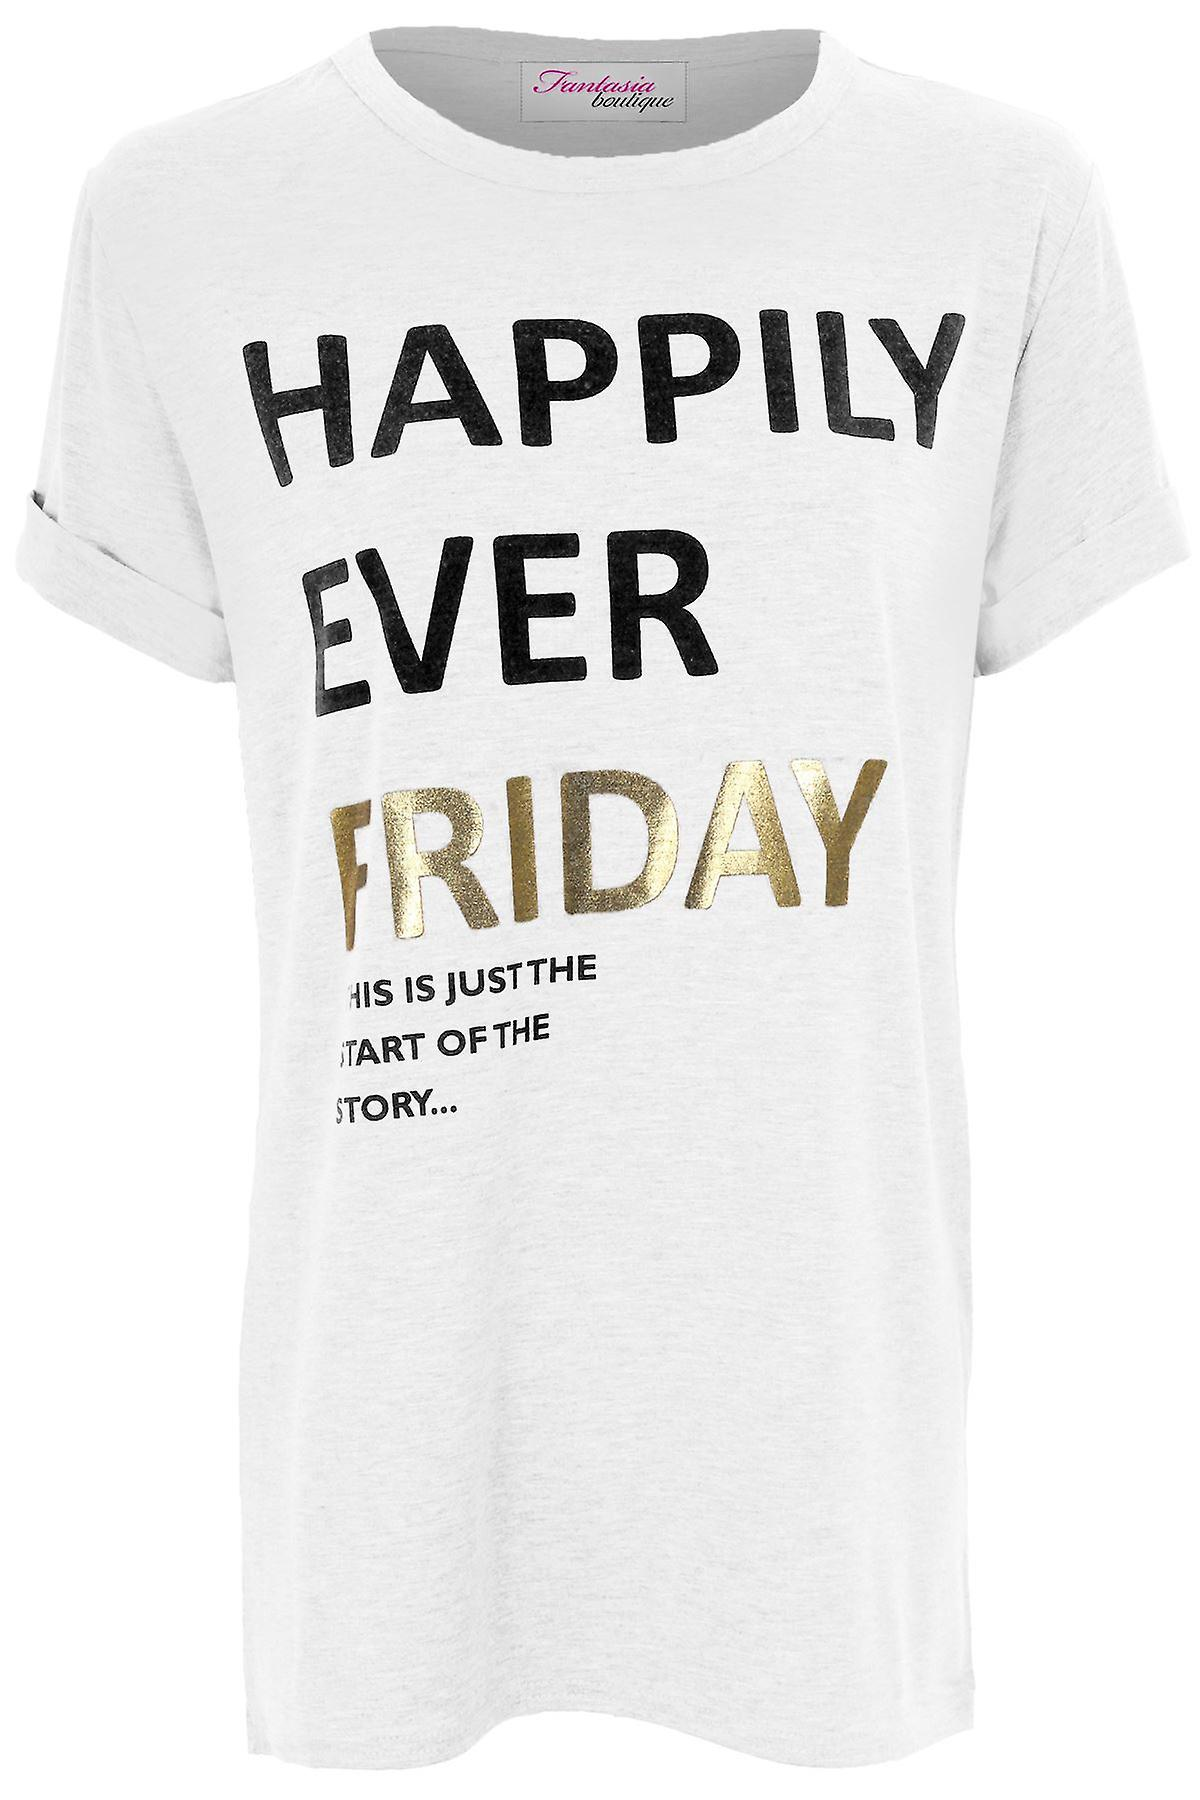 Ladies Short Sleeve Happily Ever Friday Print Stretch Casual Women's Top T-Shirt